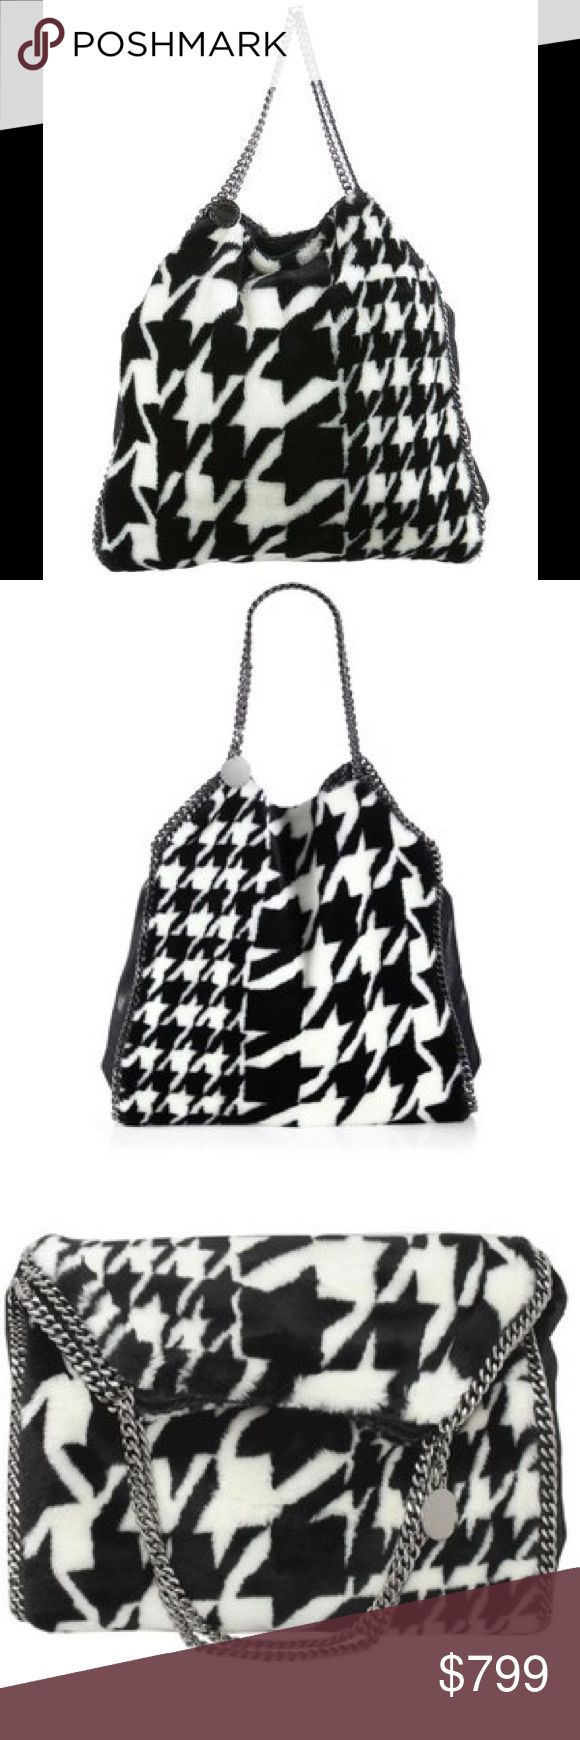 "Stella McCartney Faux Fur Falabella Tote Falabella Faux Fur Houndstooth Shoulder Bag Chic chain shoulder straps and edging with whipstitched detail accent this faux fur design in an exploded houndstooth pattern with faux leather trim. Double chain shoulder strap, 9"" drop Open top with magnetic snap closure One inside zip pouch, attached One inside zip pocket One inside open pocket Fully lined 16""W X 19""H X 5""D. Fur type: Faux Made in Italy. - Color: Black-White  $1395 retail  Comes with…"